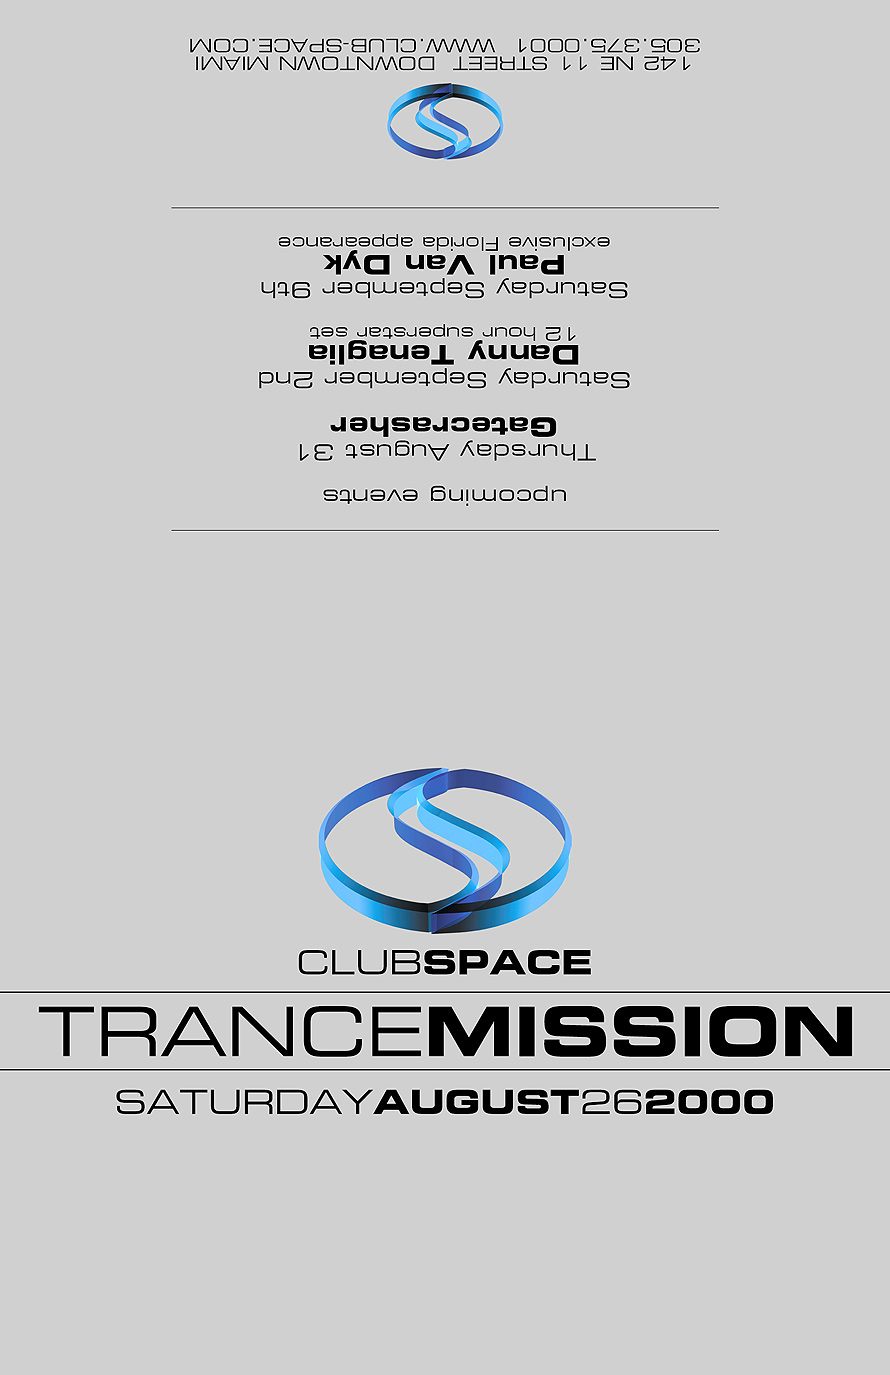 Transmission at Club Space